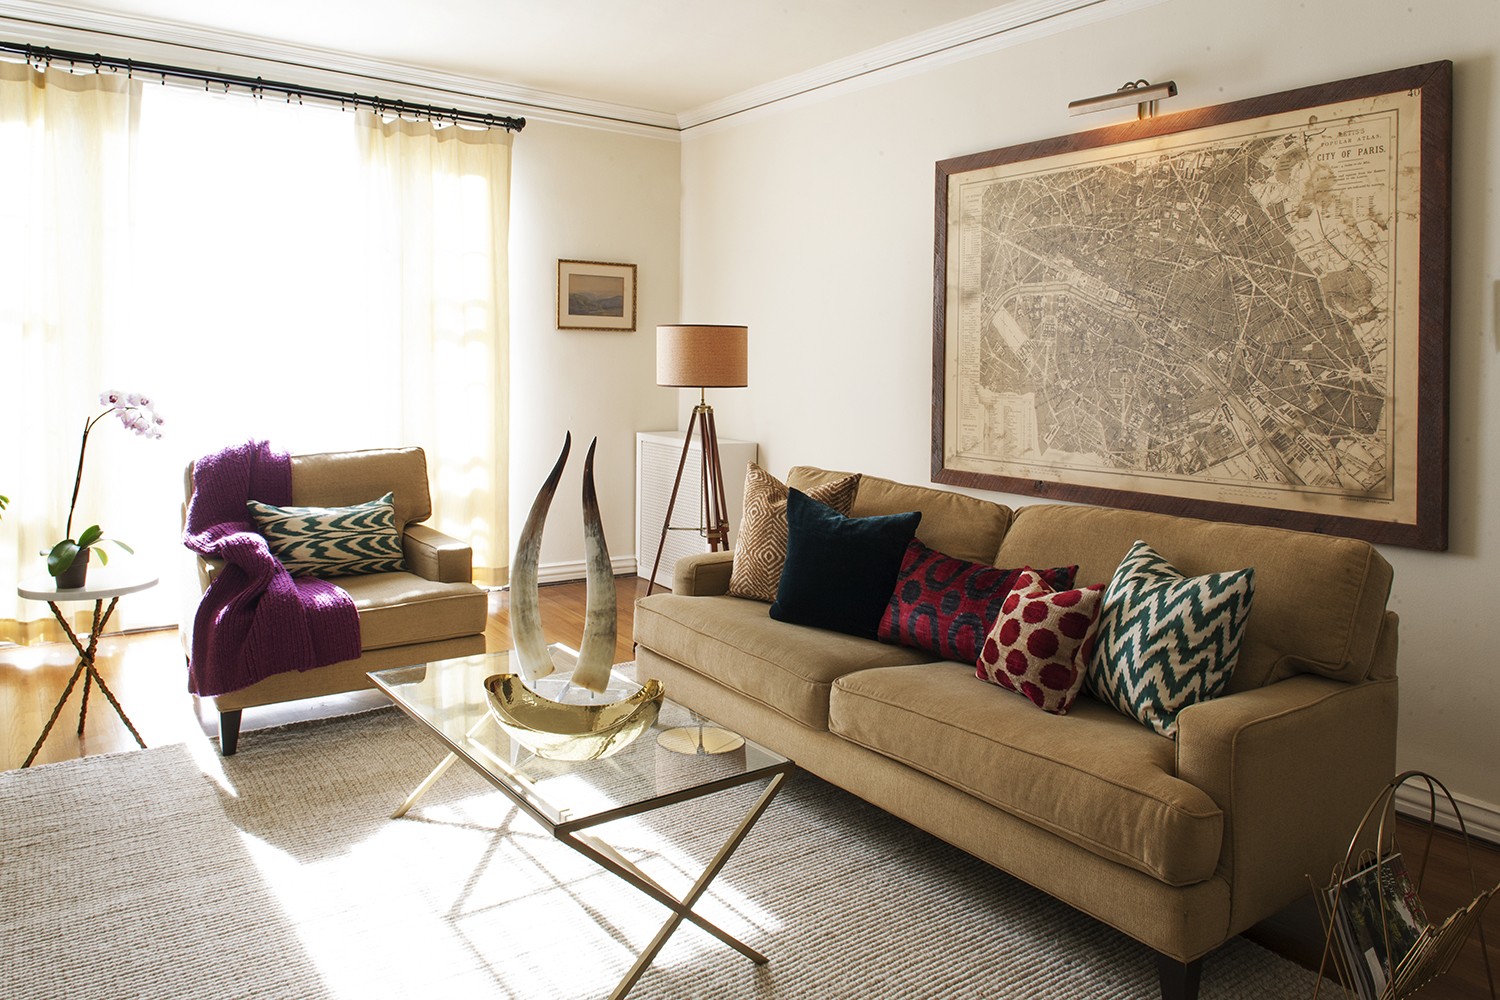 Four easy ways to update your living room for 2014 huffpost for Living room decor ideas 2014